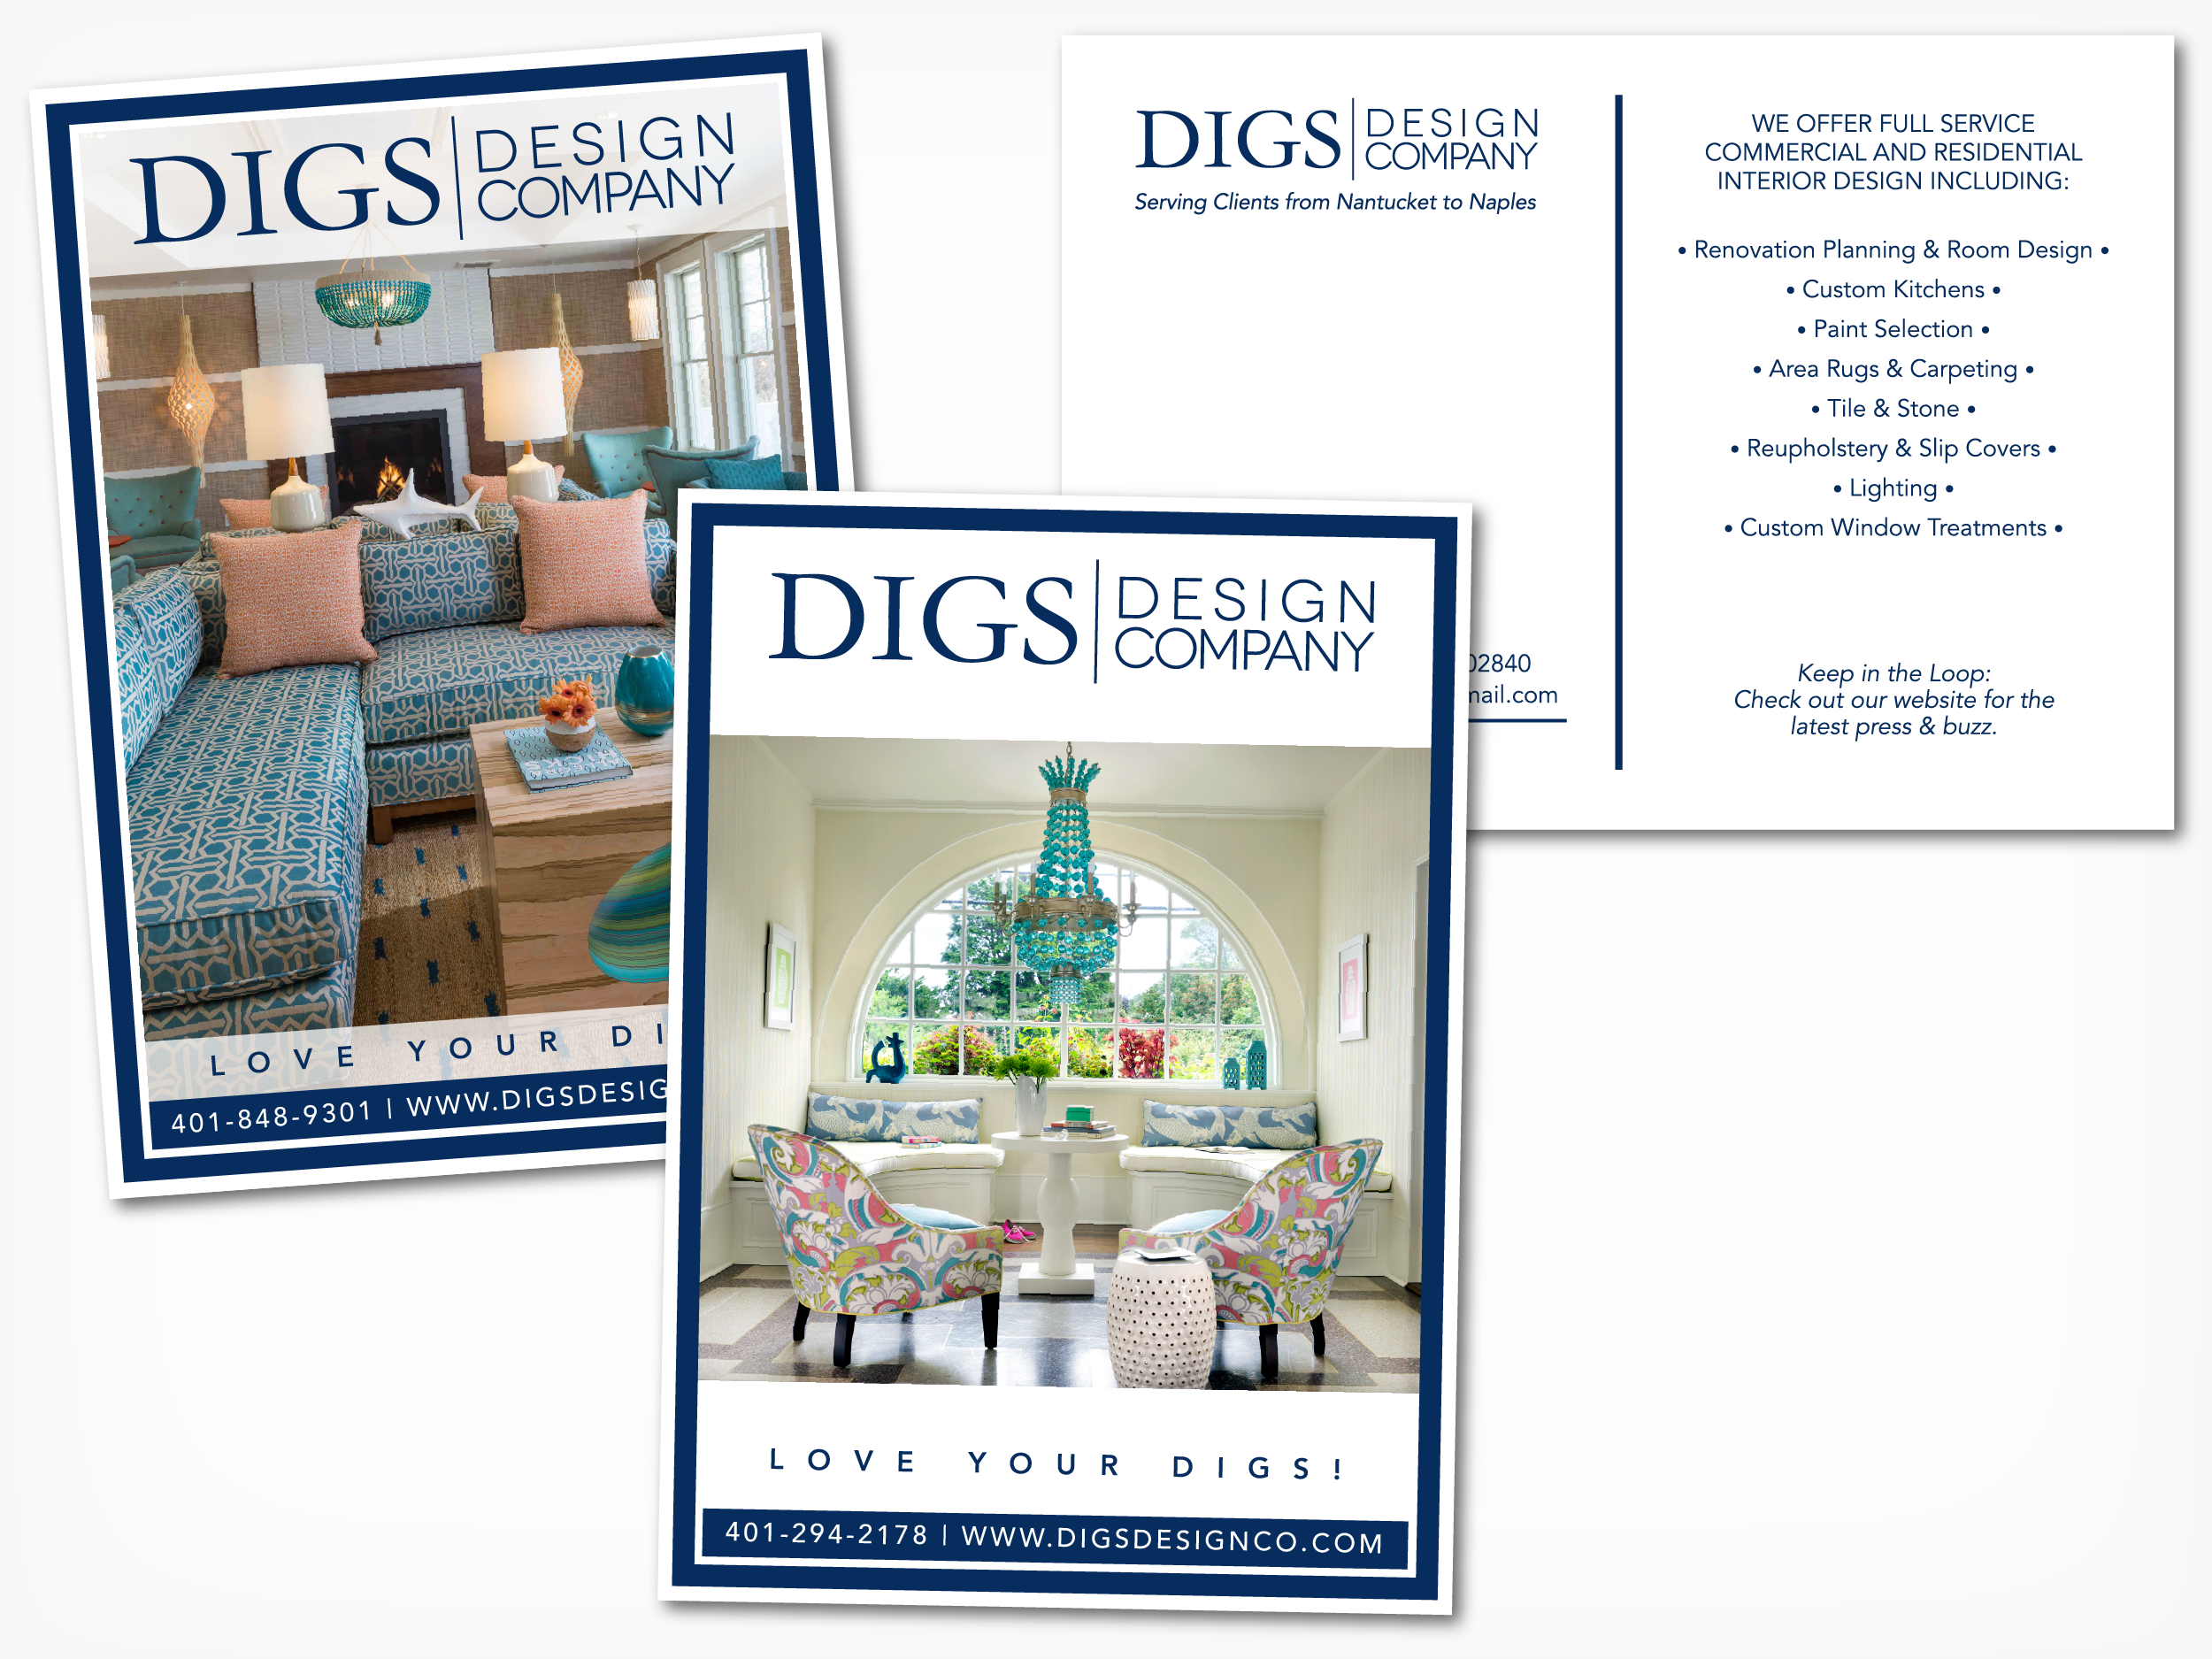 DIGS DESIGN COMPANY